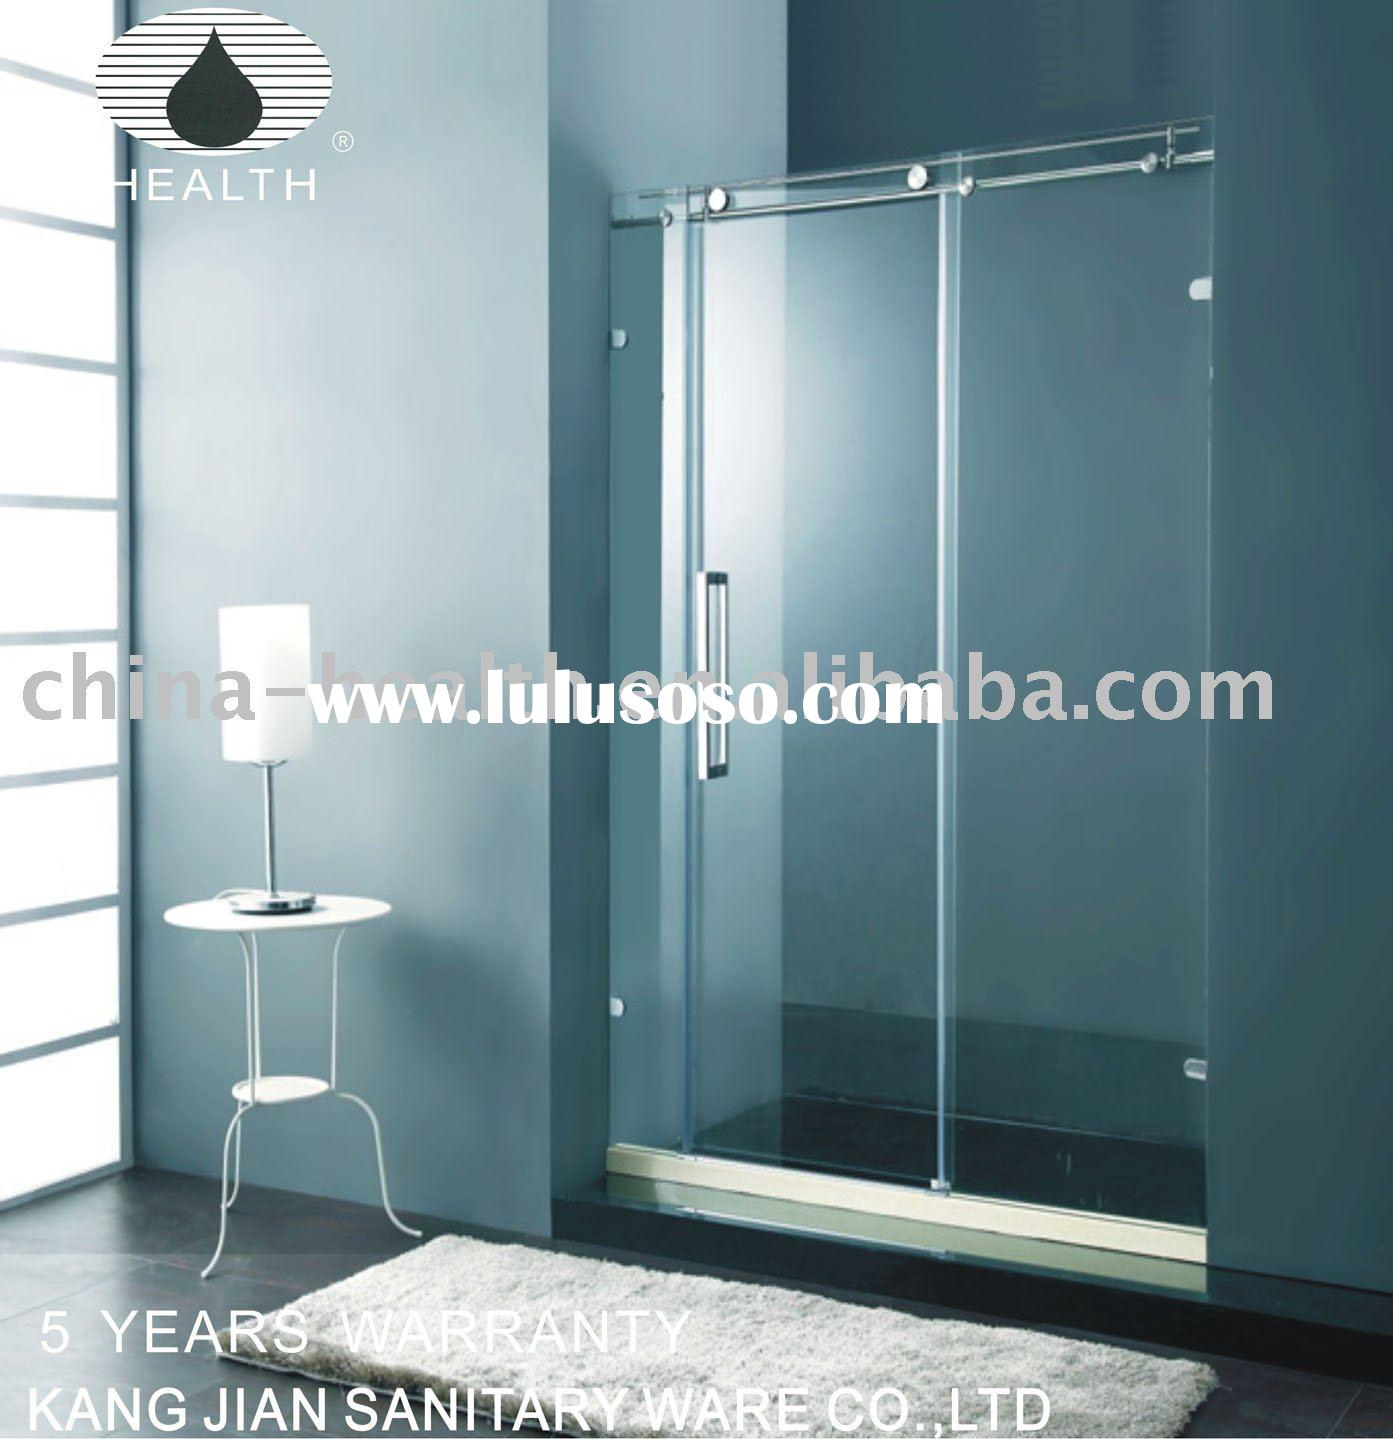 Bathroom Doors Frosted Glass South Africa shower sliding glass door image collections - glass door, interior